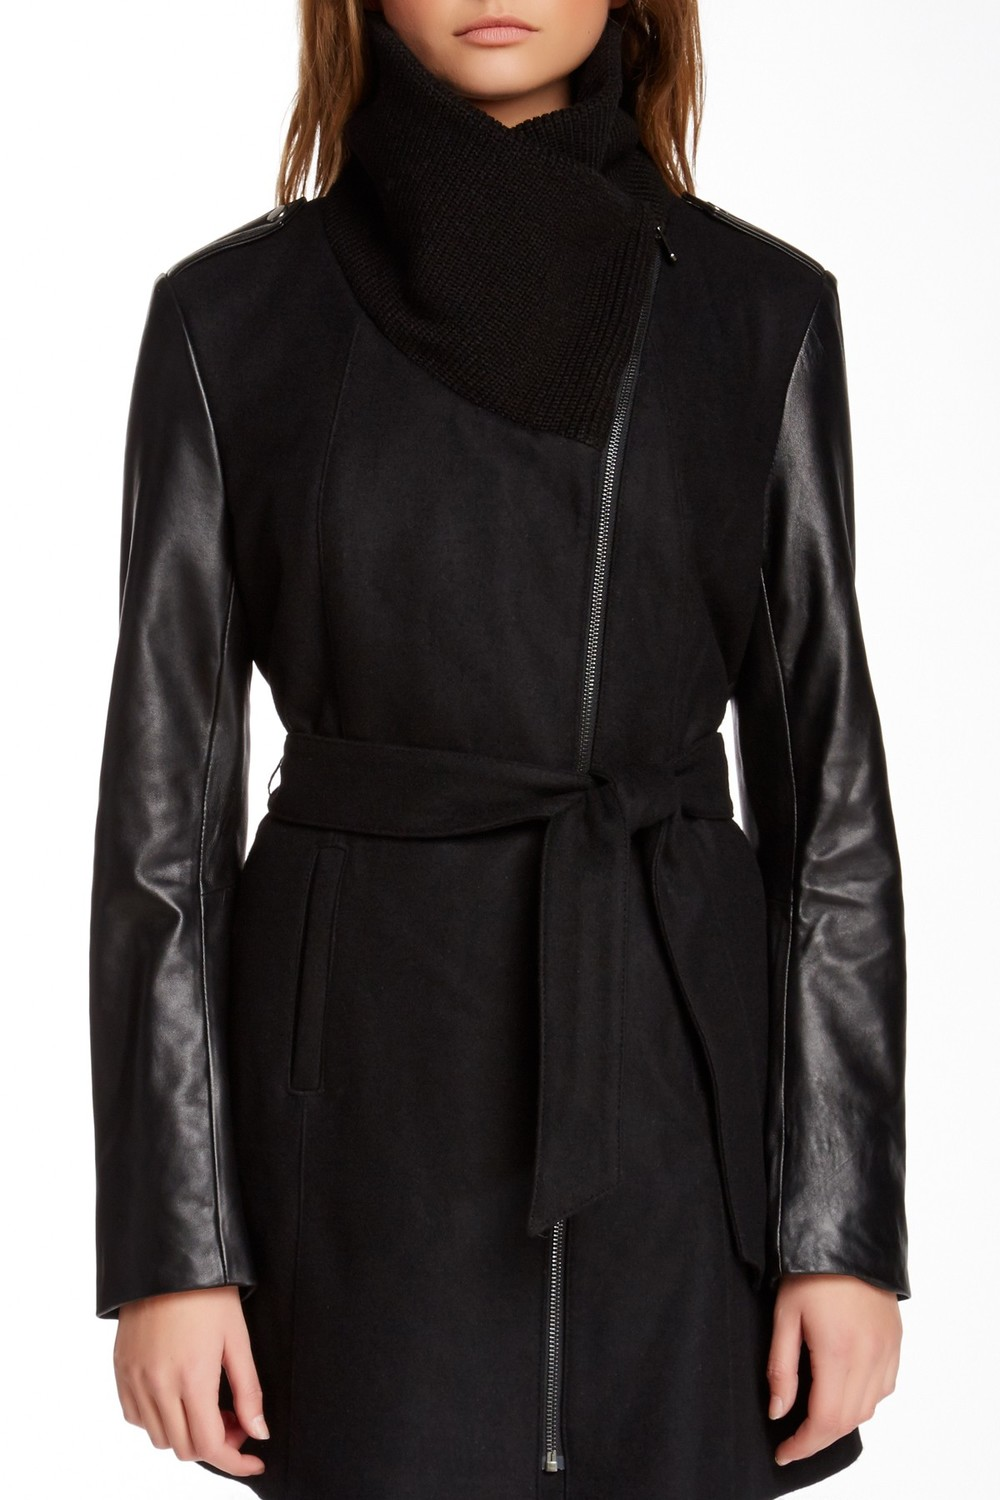 Truth of Touch Mercer Leather Sleeve Wool Blend Coat. Available in black, chocolate. Nordstrom Rack. Was: $325 Now: $129.